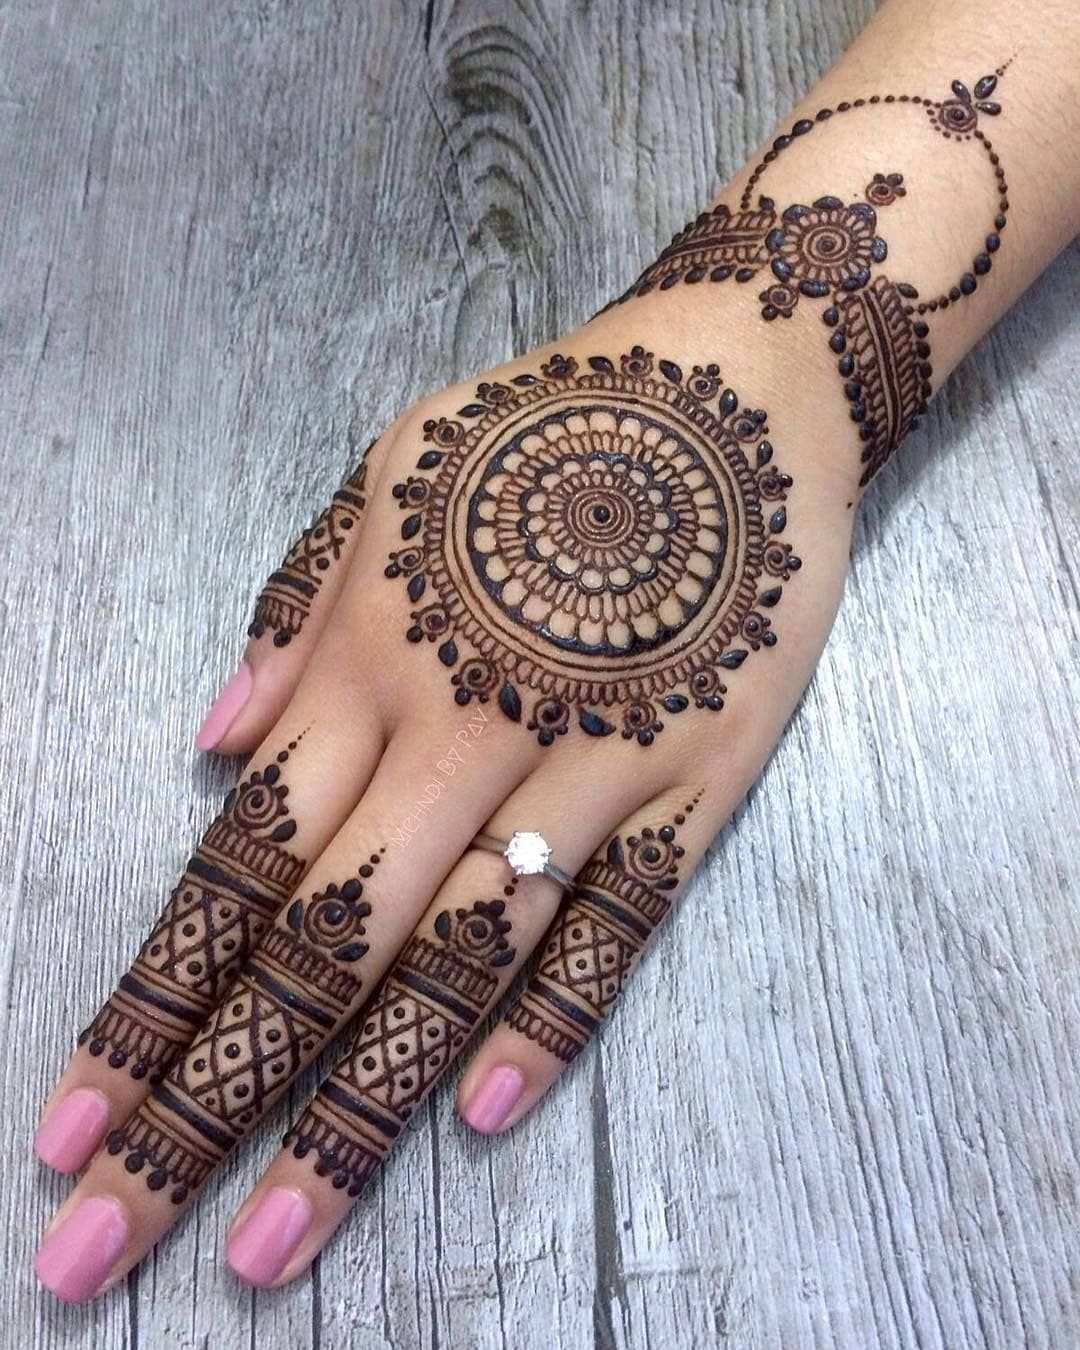 14 3k Likes 19 Comments Daily Henna Inspiration Hennainspo On Instagram Love This Clas Henna Tattoo Kit Mehndi Designs For Hands Latest Mehndi Designs